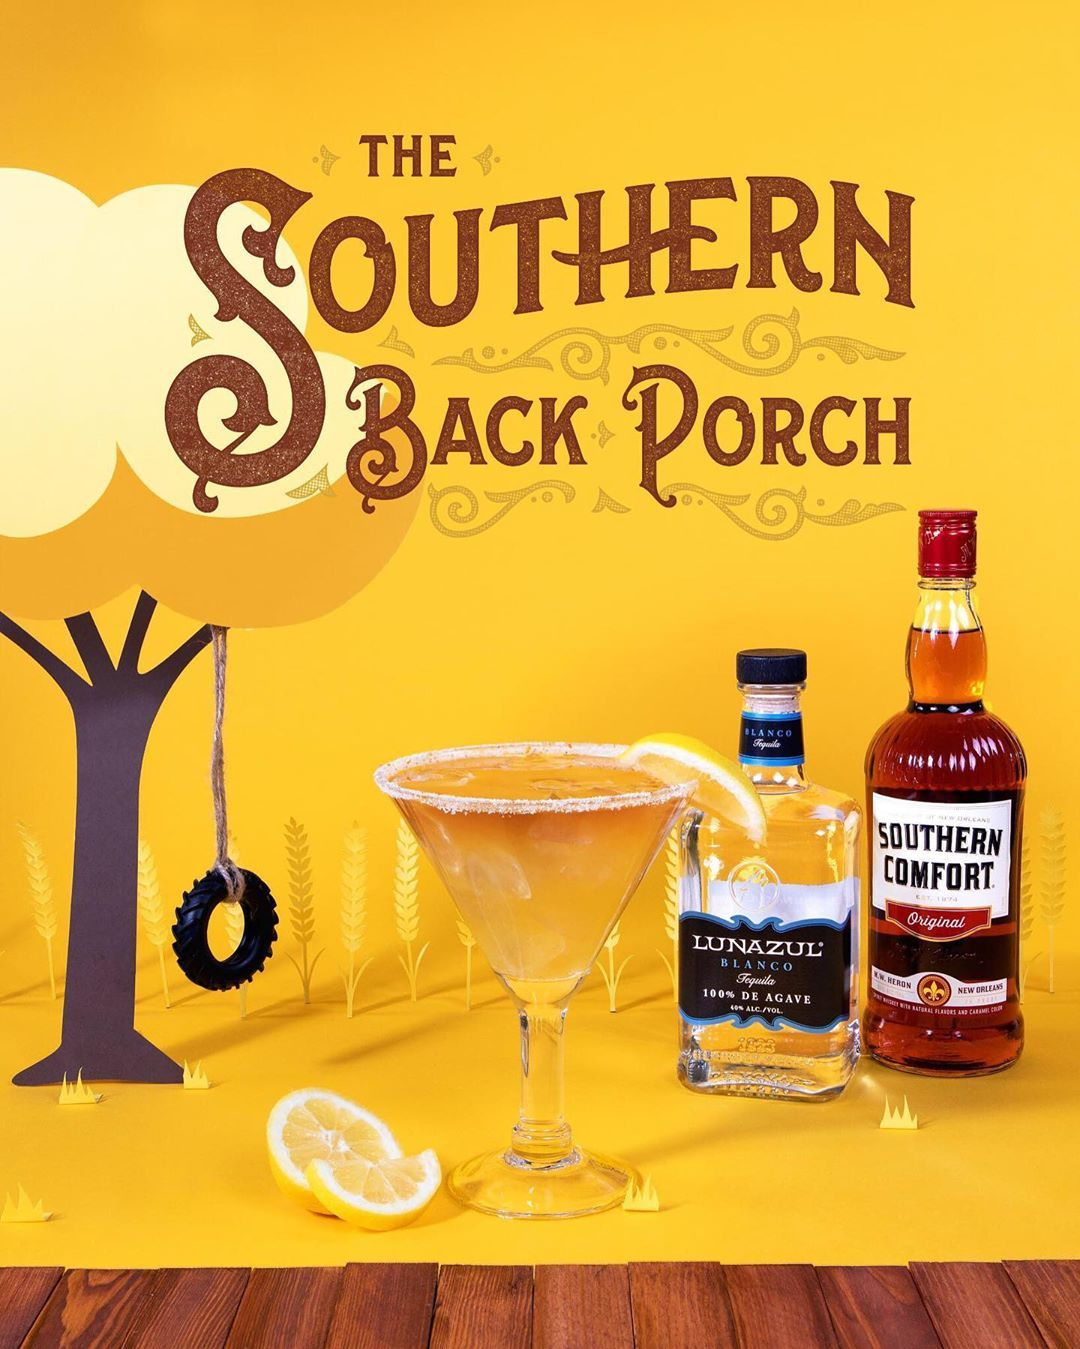 Chili S 5 Southern Back Porch Margarita Of The Month Is About As